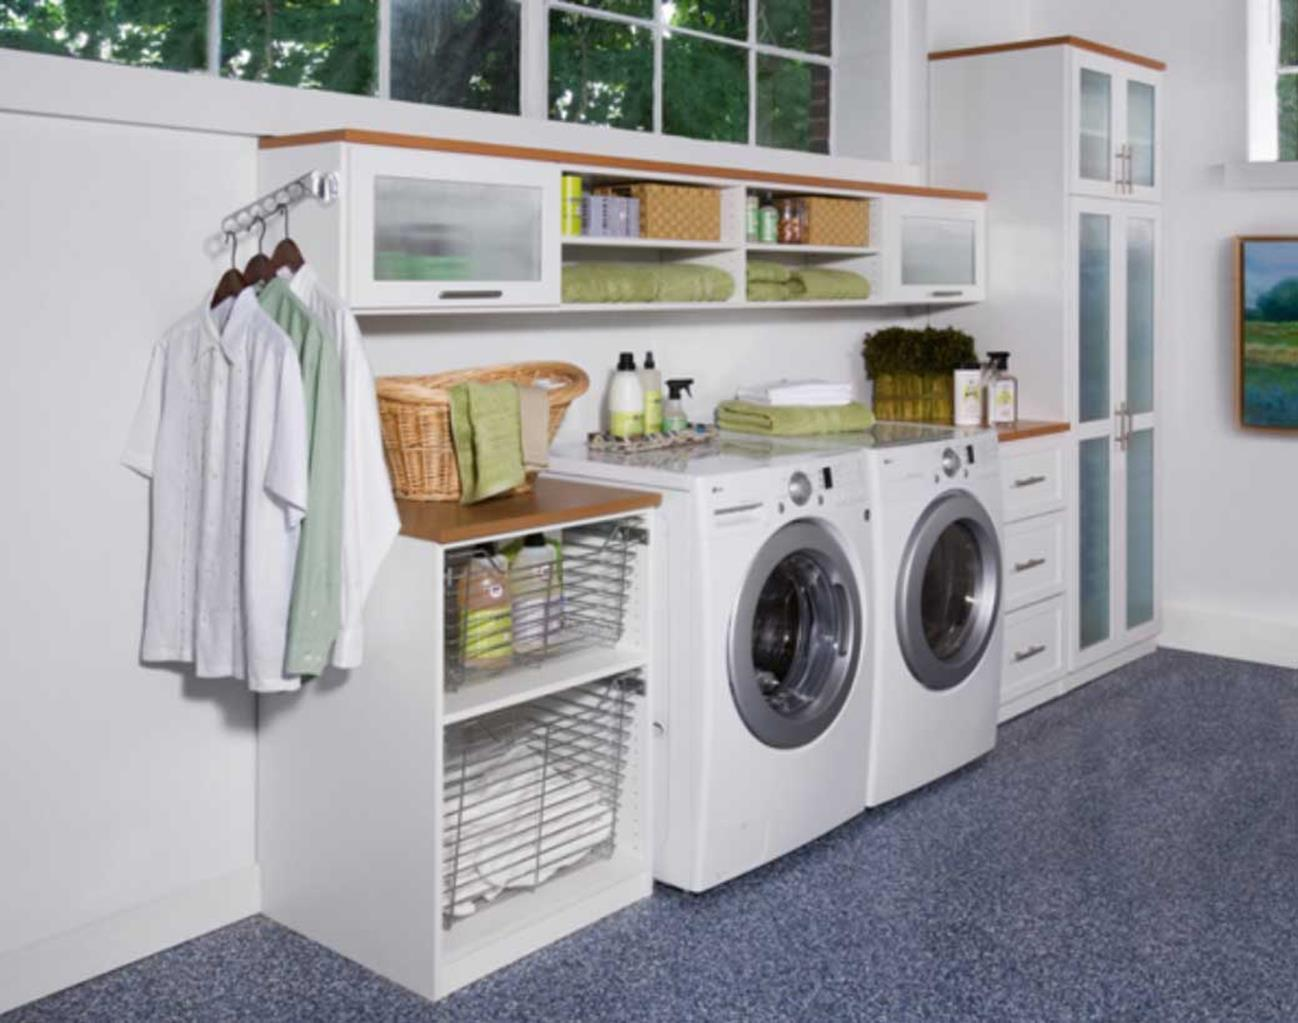 Decorating A Laundry Room On A Budget 12